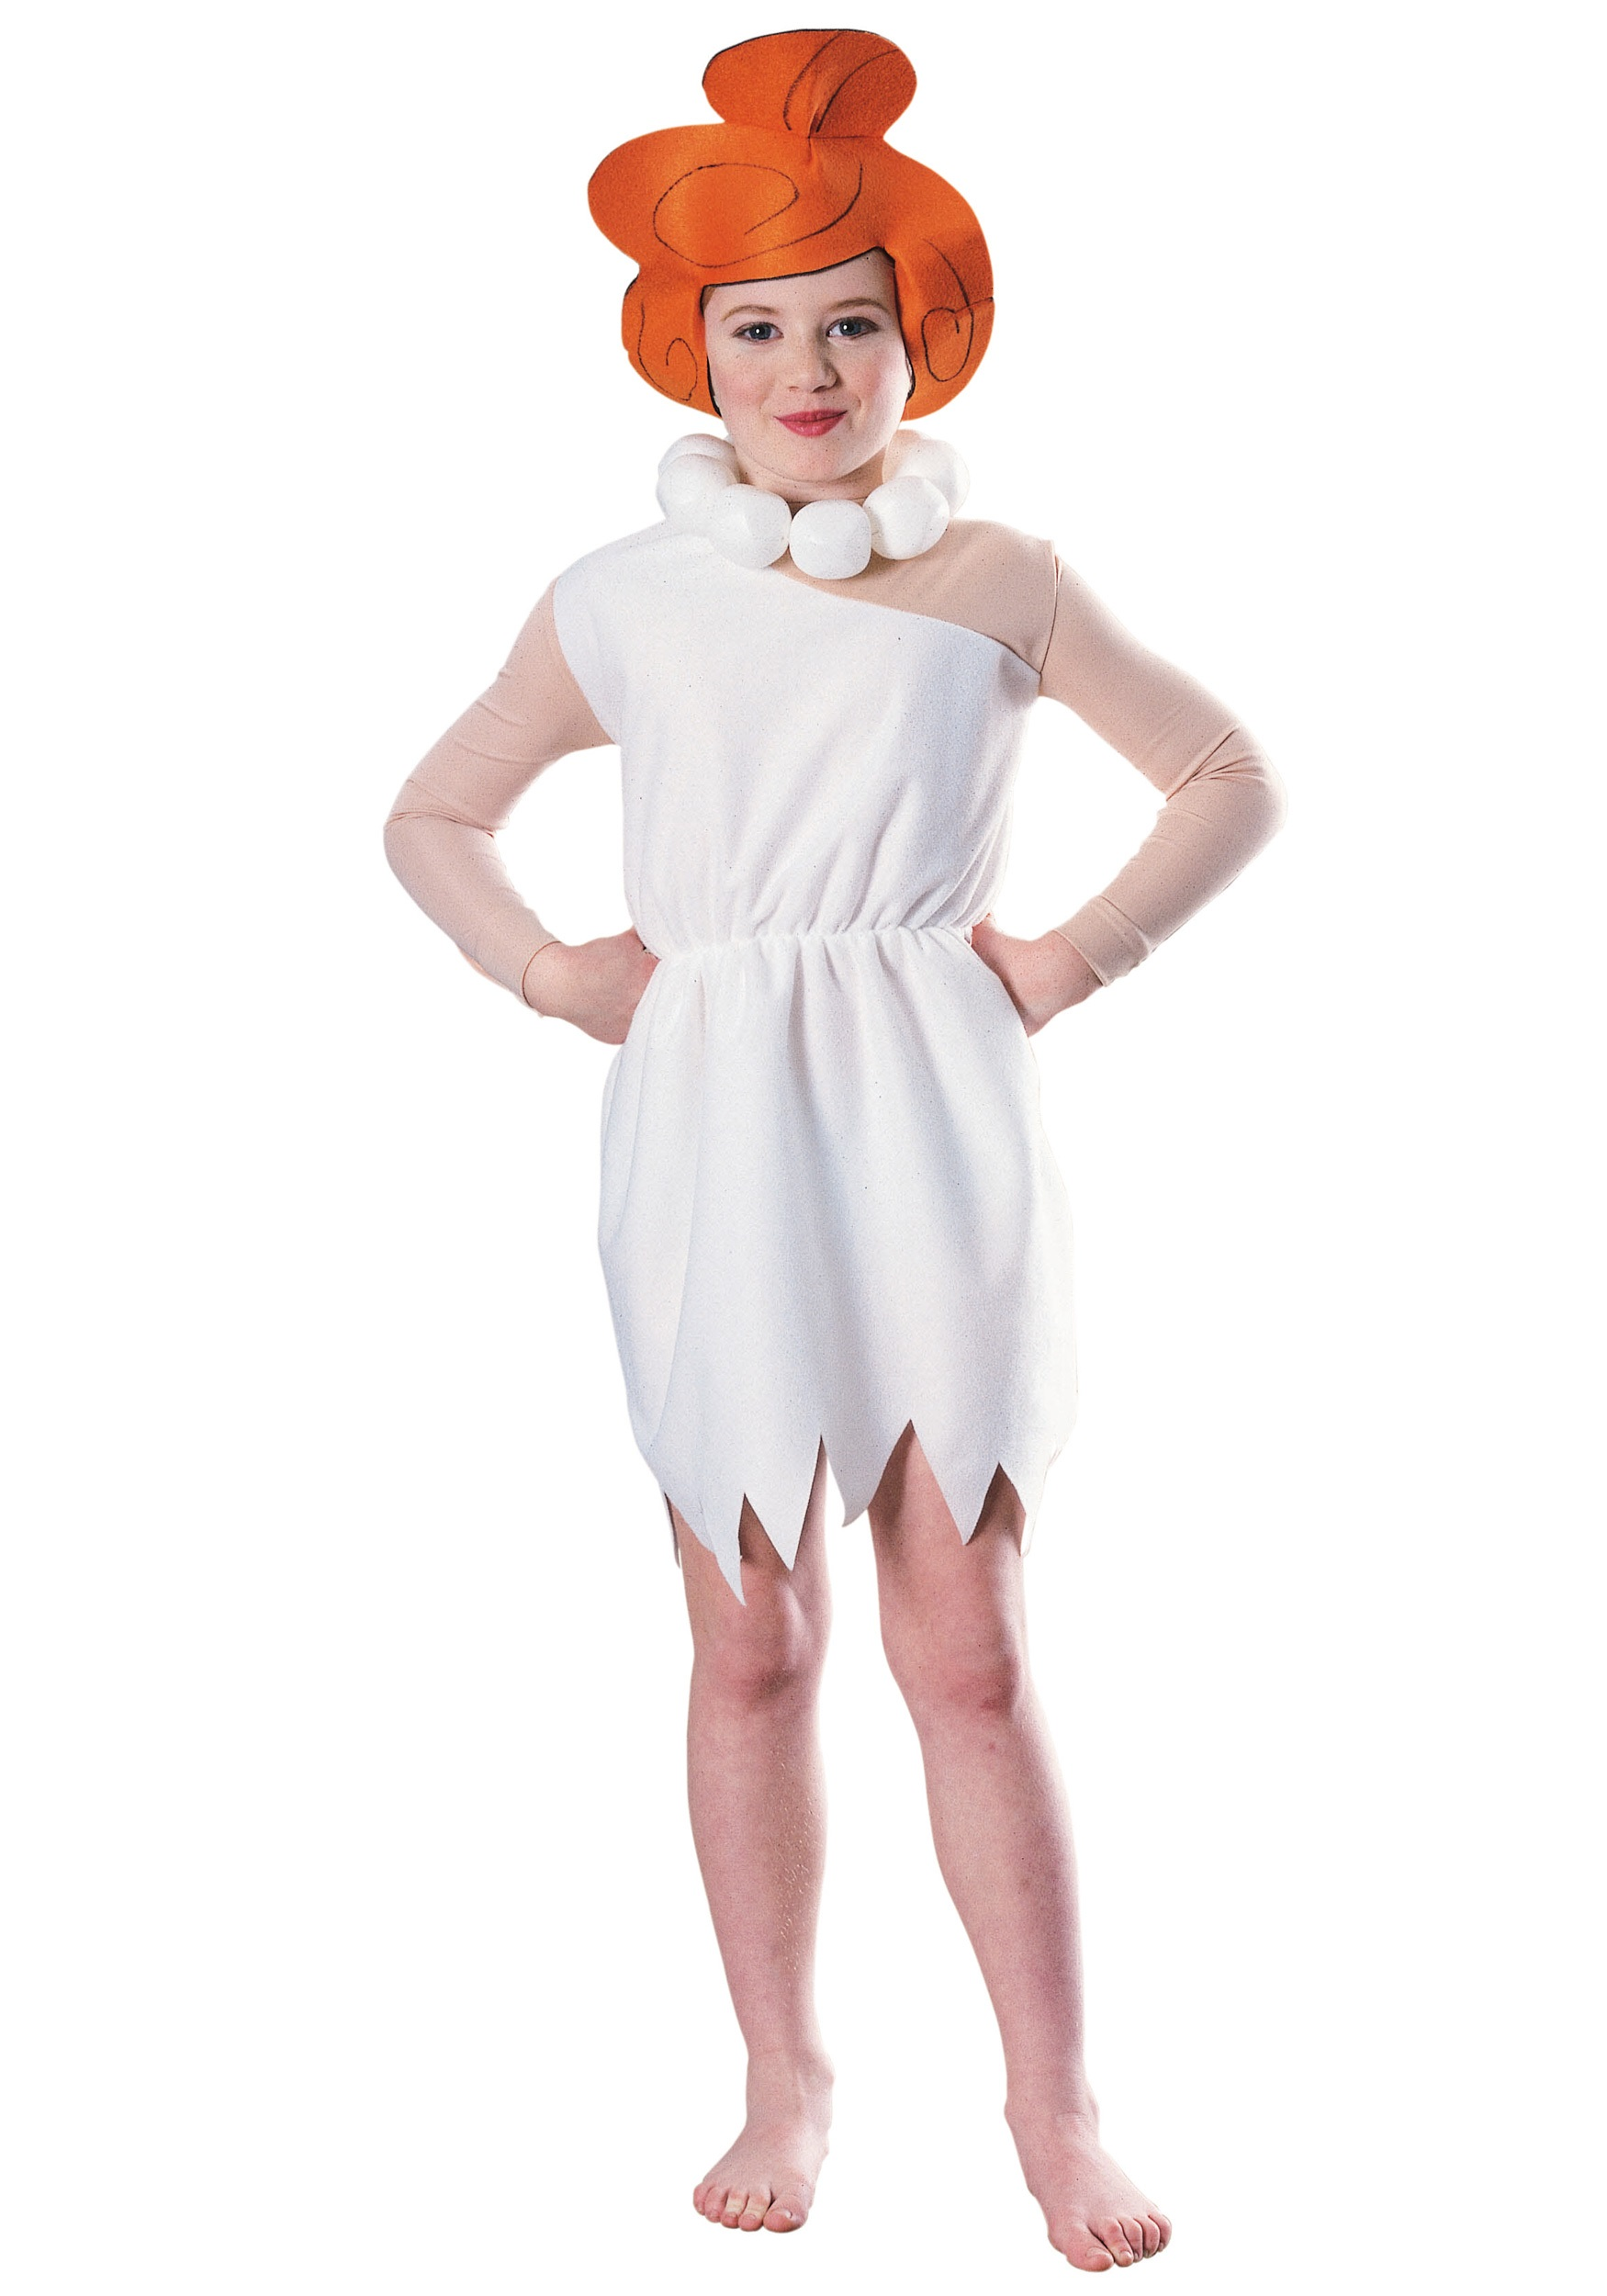 Kids Wilma Flintstone Costume  sc 1 st  Halloween Costumes & Kids Wilma Flintstone Costume - Halloween Costumes